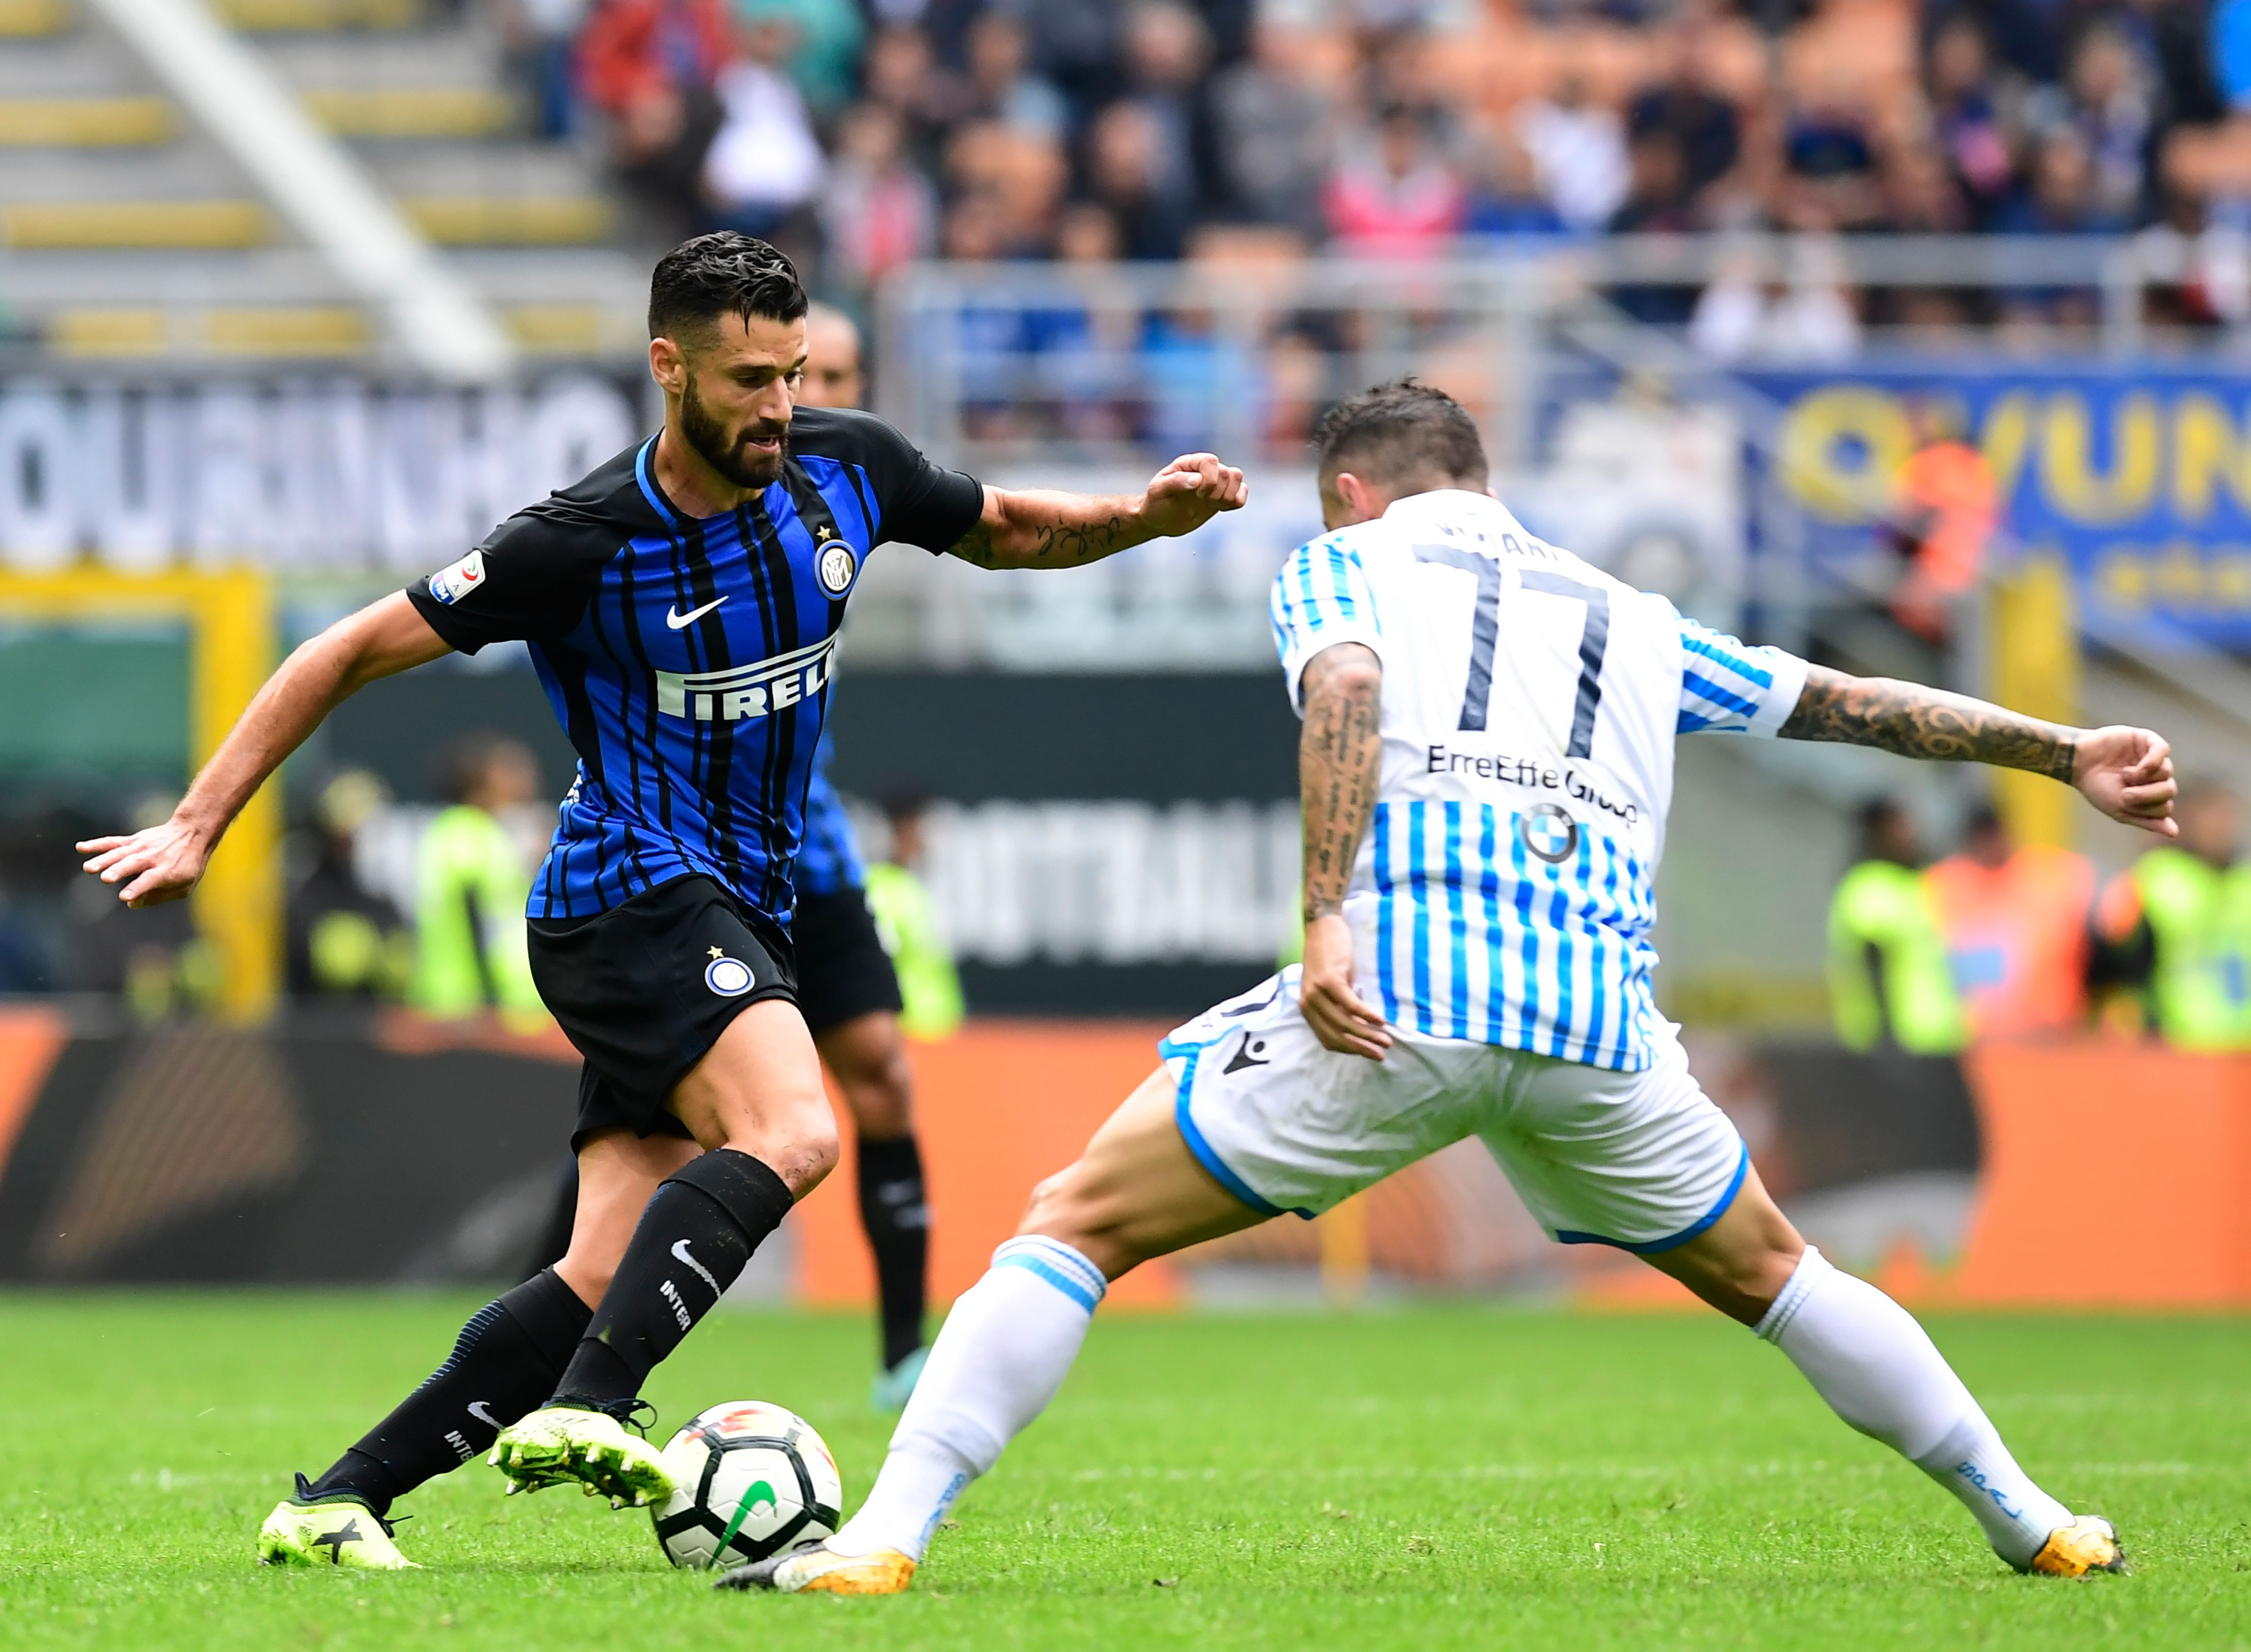 Inter Milan's Italian midfielder Antonio Candreva (L) fights for the ball with Spal's Italian midfielder Federico Viviani during the Italian Serie A football match between Inter Milan and Spal at San Siro Stadium in Milan on September 10, 2017. / AFP PHOTO / MIGUEL MEDINA / The erroneous mention appearing in the metadata of this photo by MIGUEL MEDINA has been modified in AFP systems in the following manner: [Inter Milan's Italian midfielder Antonio Candreva] instead of [Inter Milan's Italian midfielder Roberto Gagliardini]. Please immediately remove the erroneous mention from all your online services and delete it (them) from your servers. If you have been authorized by AFP to distribute it to third parties, please ensure that the same actions are carried out by them. Failure to promptly comply with these instructions will entail liability on your part for any continued or post notification usage. Therefore we thank you very much for all your attention and prompt action. We are sorry for the inconvenience this notification may cause and remain at your disposal for any further information you may require. (Photo credit should read MIGUEL MEDINA/AFP/Getty Images)